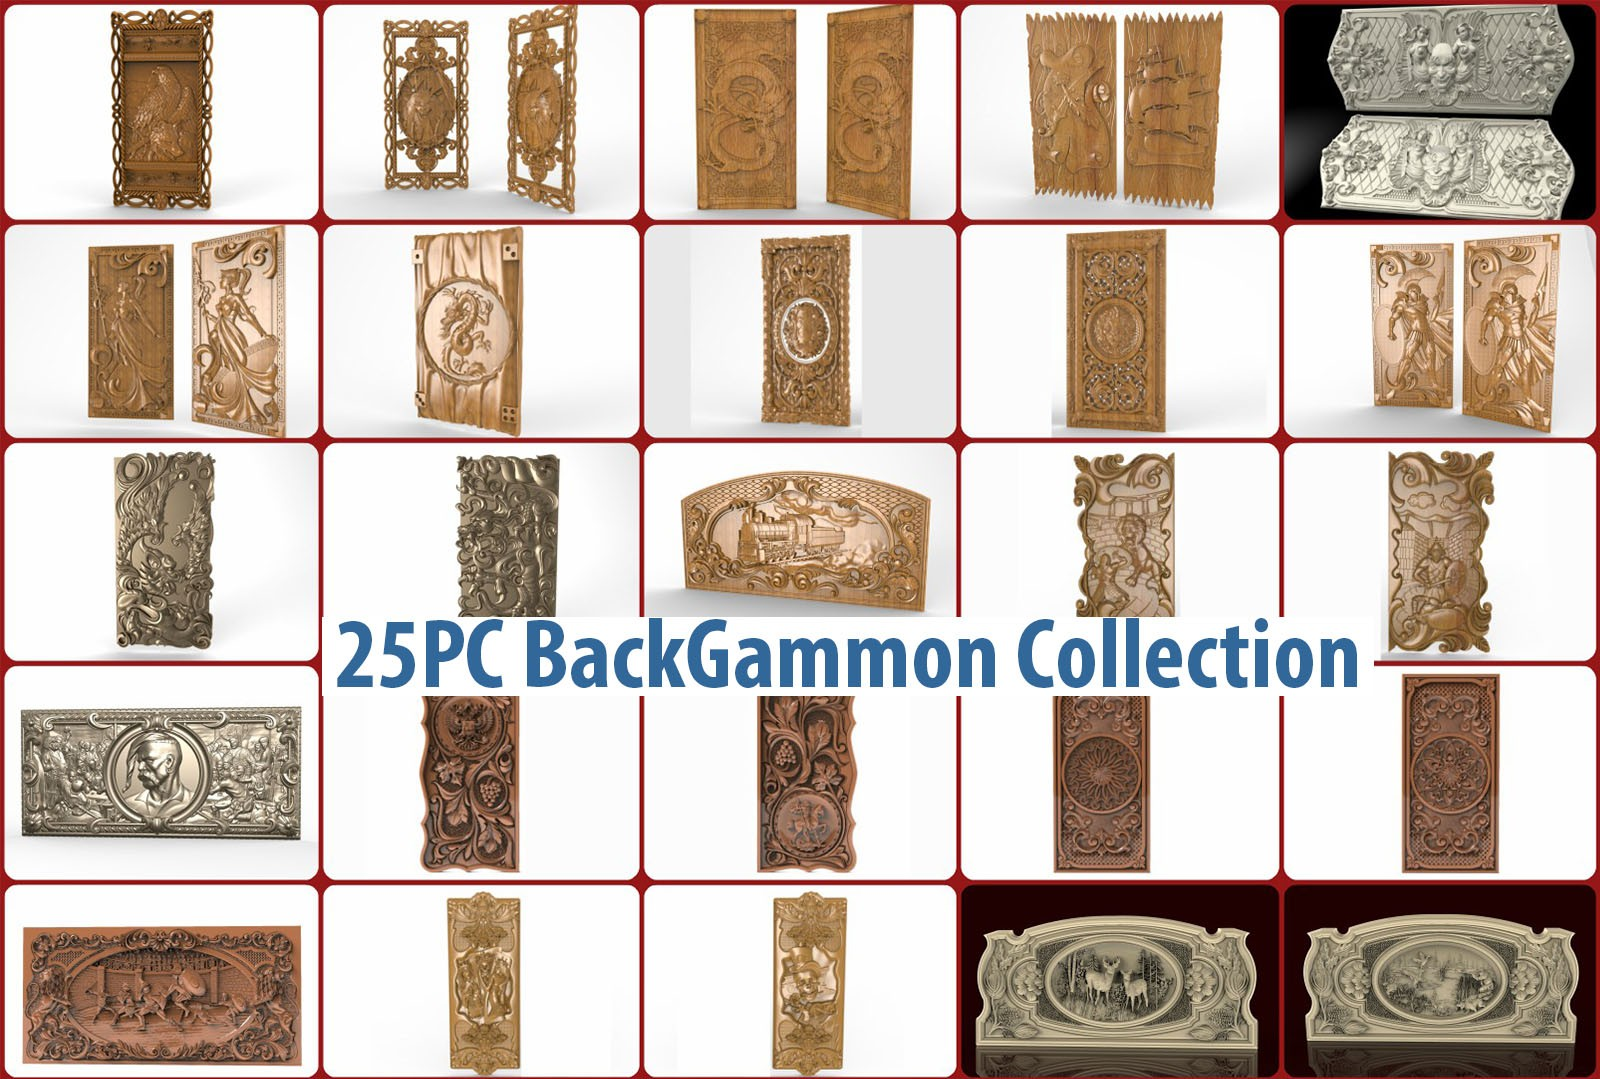 CNC G017 25PC Backgammon Collection 3D STL Model